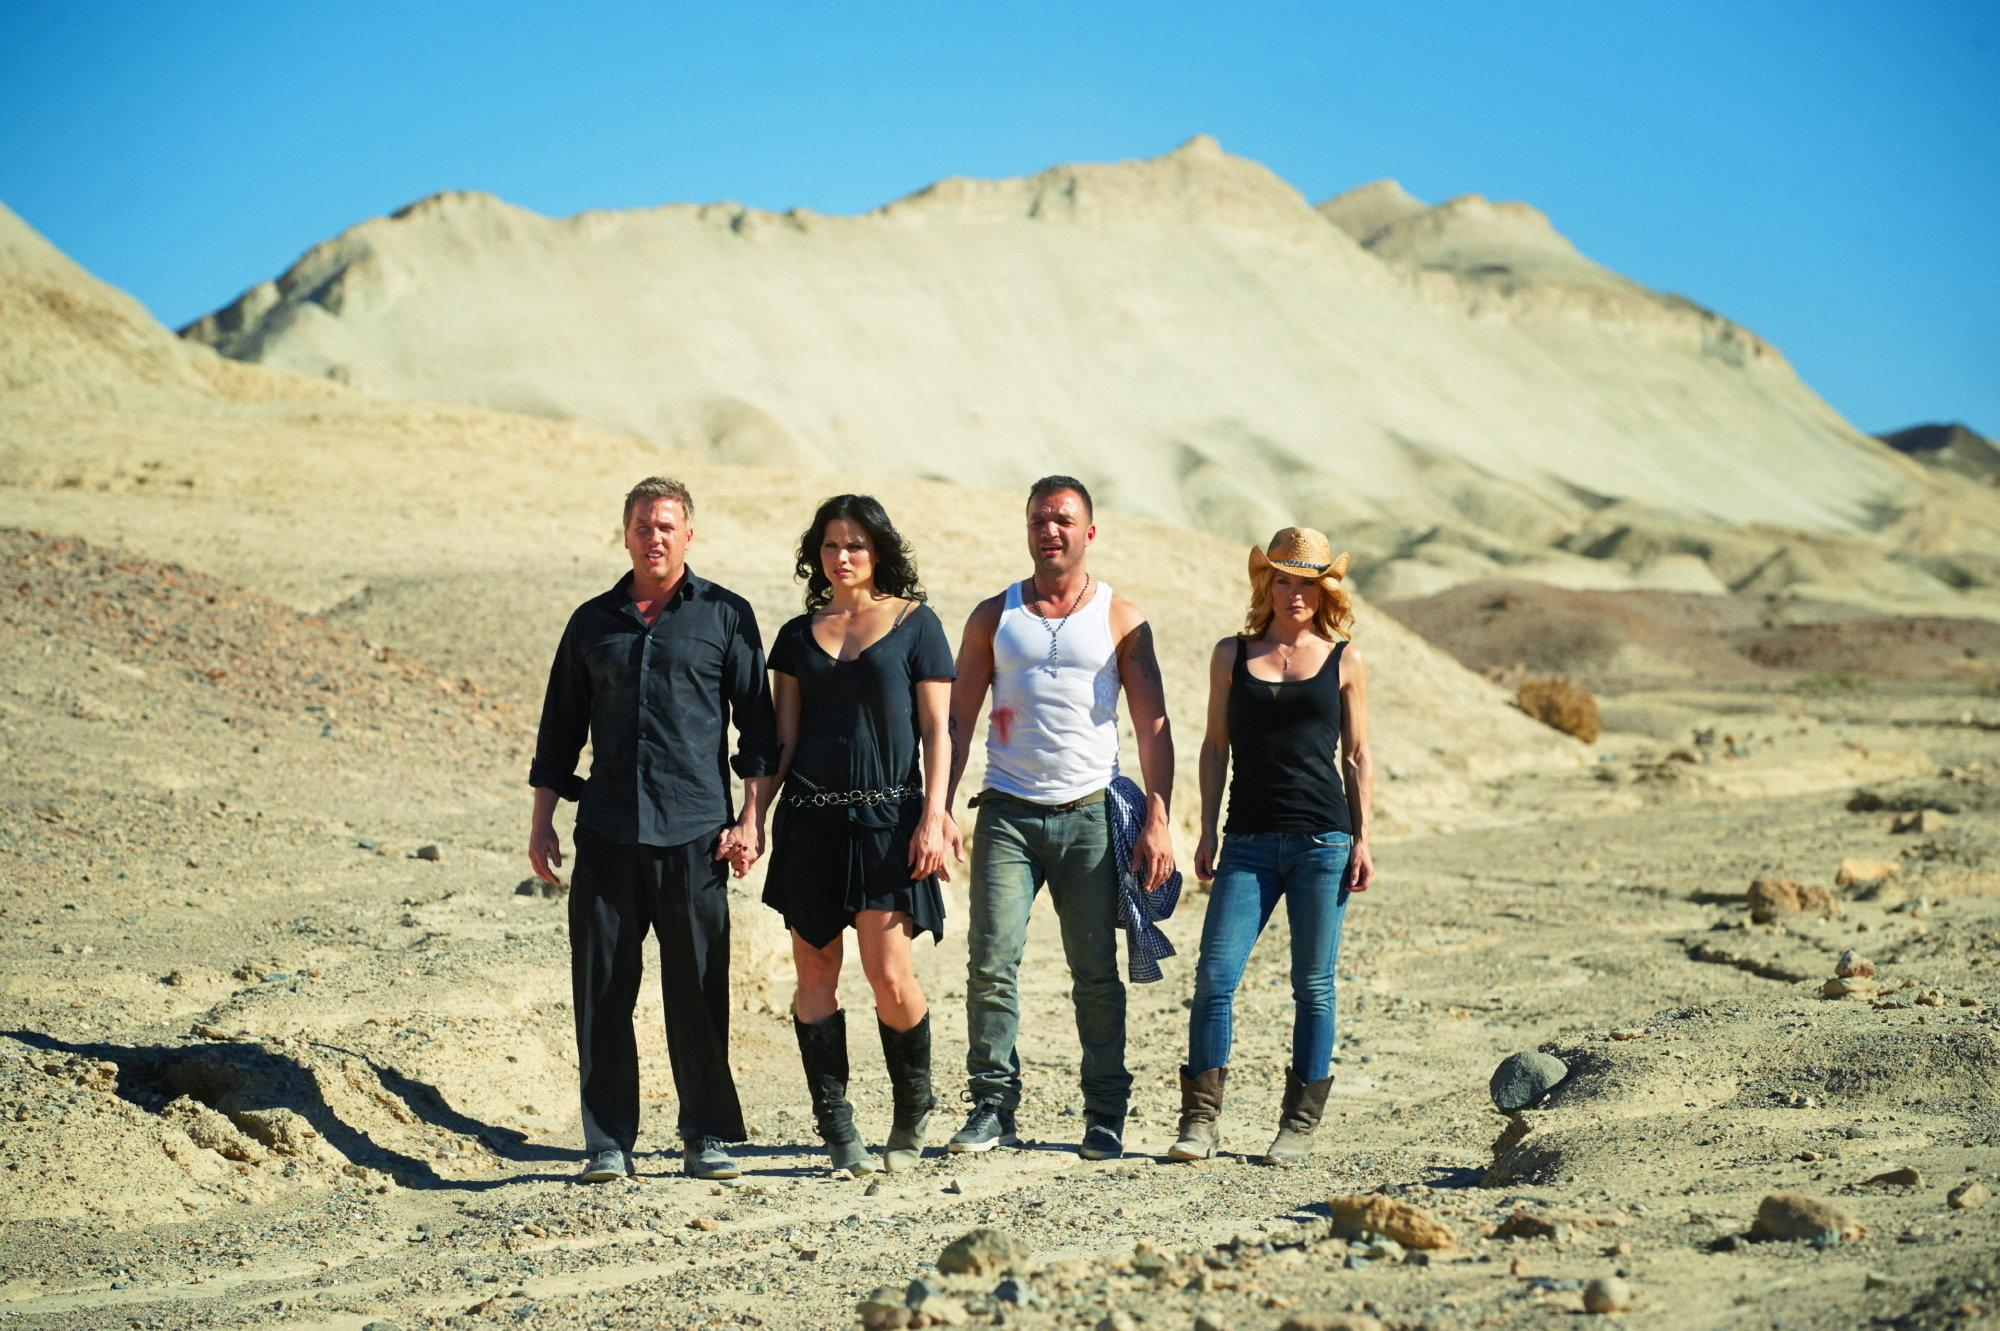 lochlyn-munro,-katrina-law,-nick-e-tarabay,-victoria-pratt-in-death-valley-large-picture